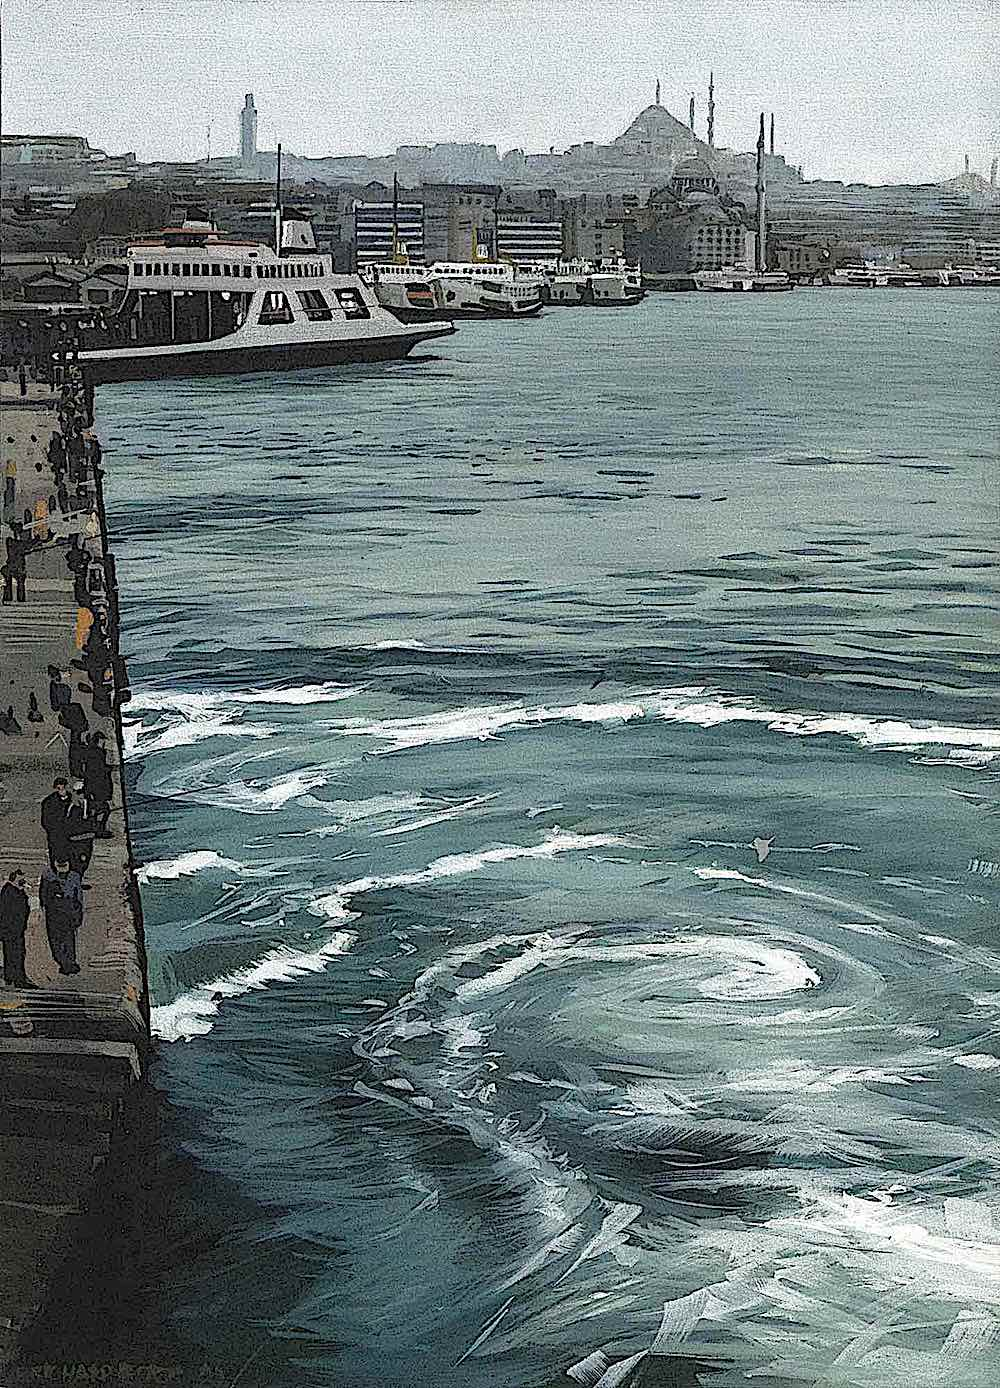 a Richard Estes painting of big city docks with people and ferries